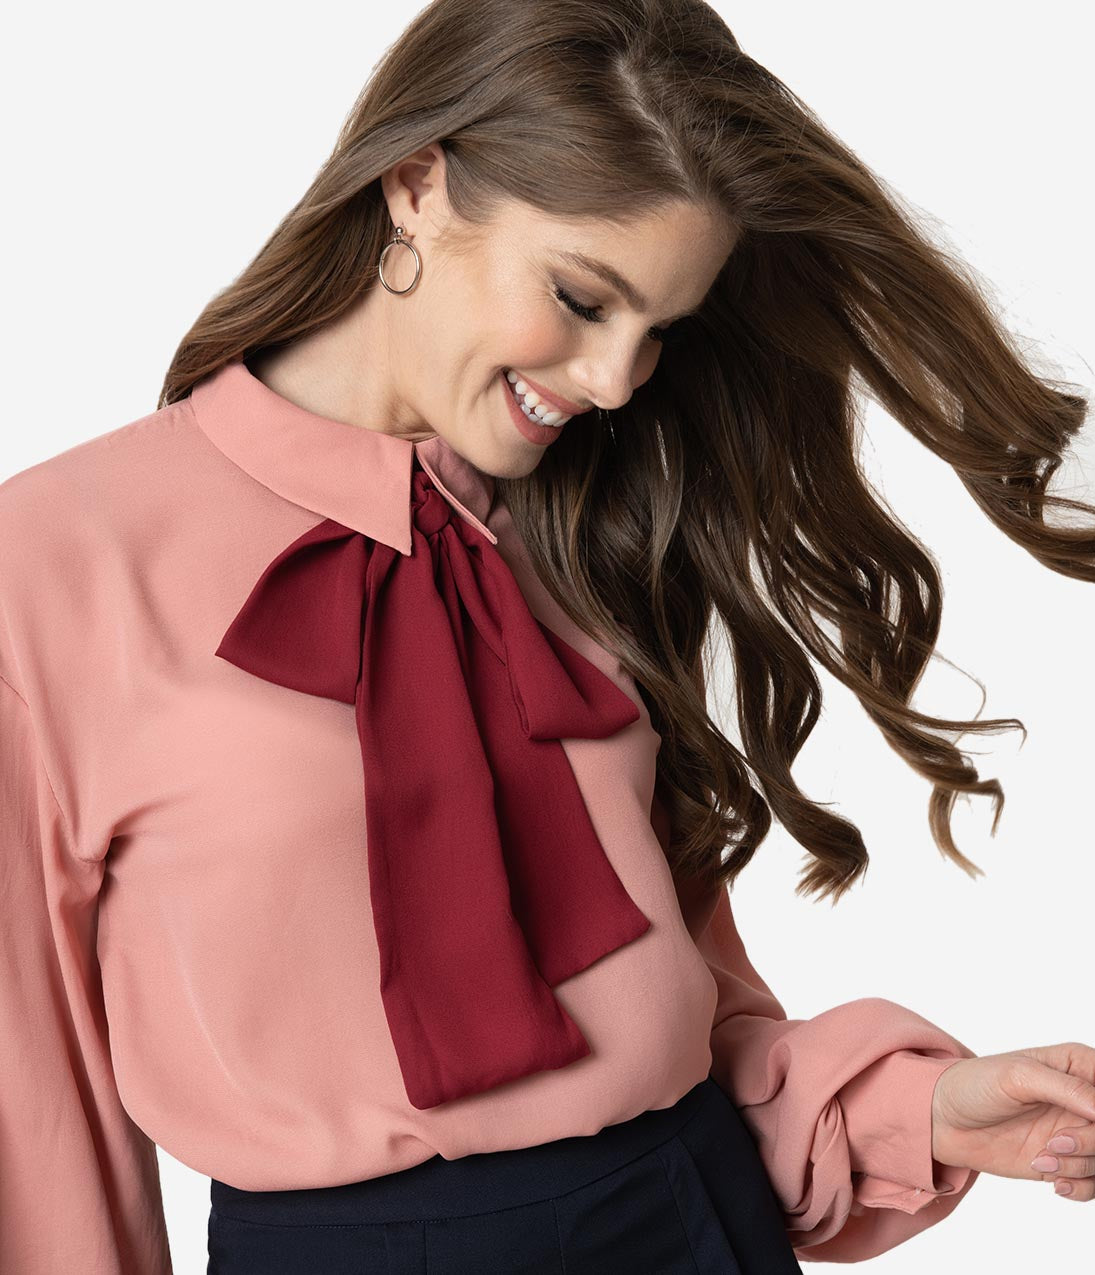 Women's 70s Shirts, Blouses, Hippie Tops Vintage Style Dusty Rose  Burgundy Neck Tie Long Sleeve Blouse $42.00 AT vintagedancer.com